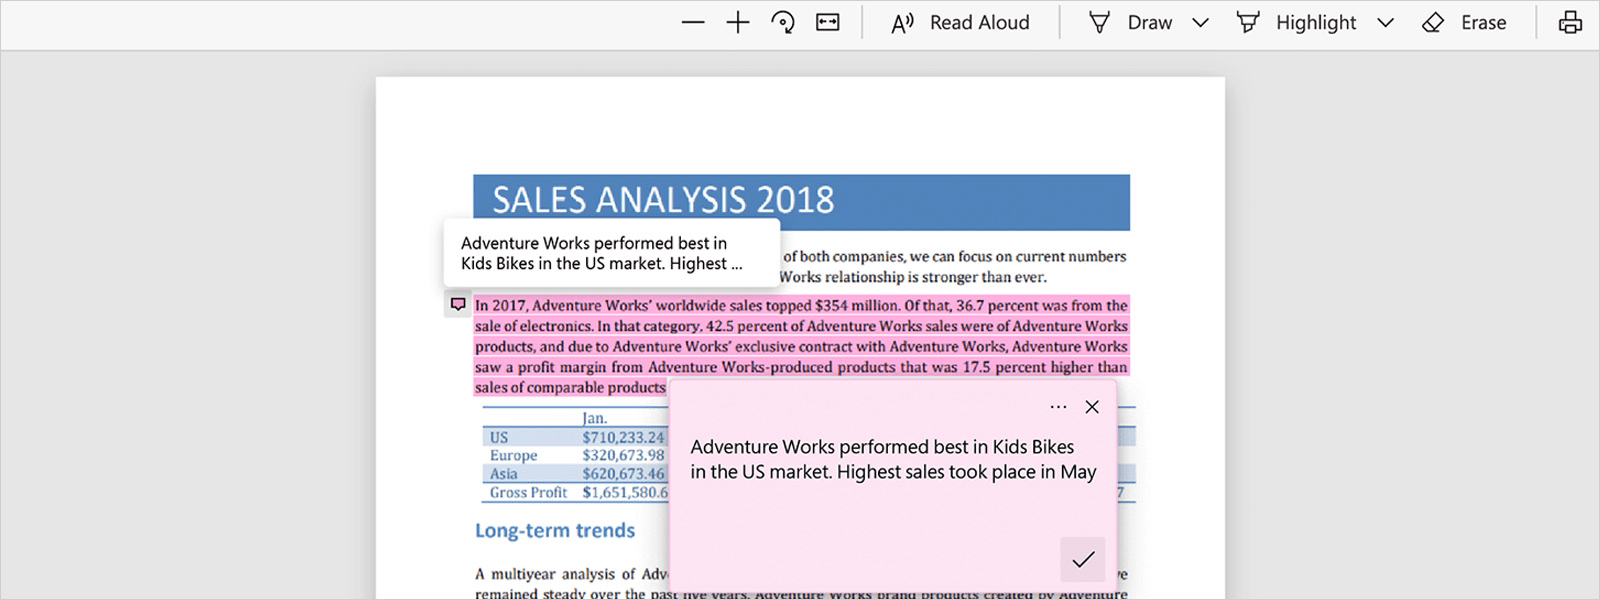 Das neue Dashboard in Microsoft Edge 88.0